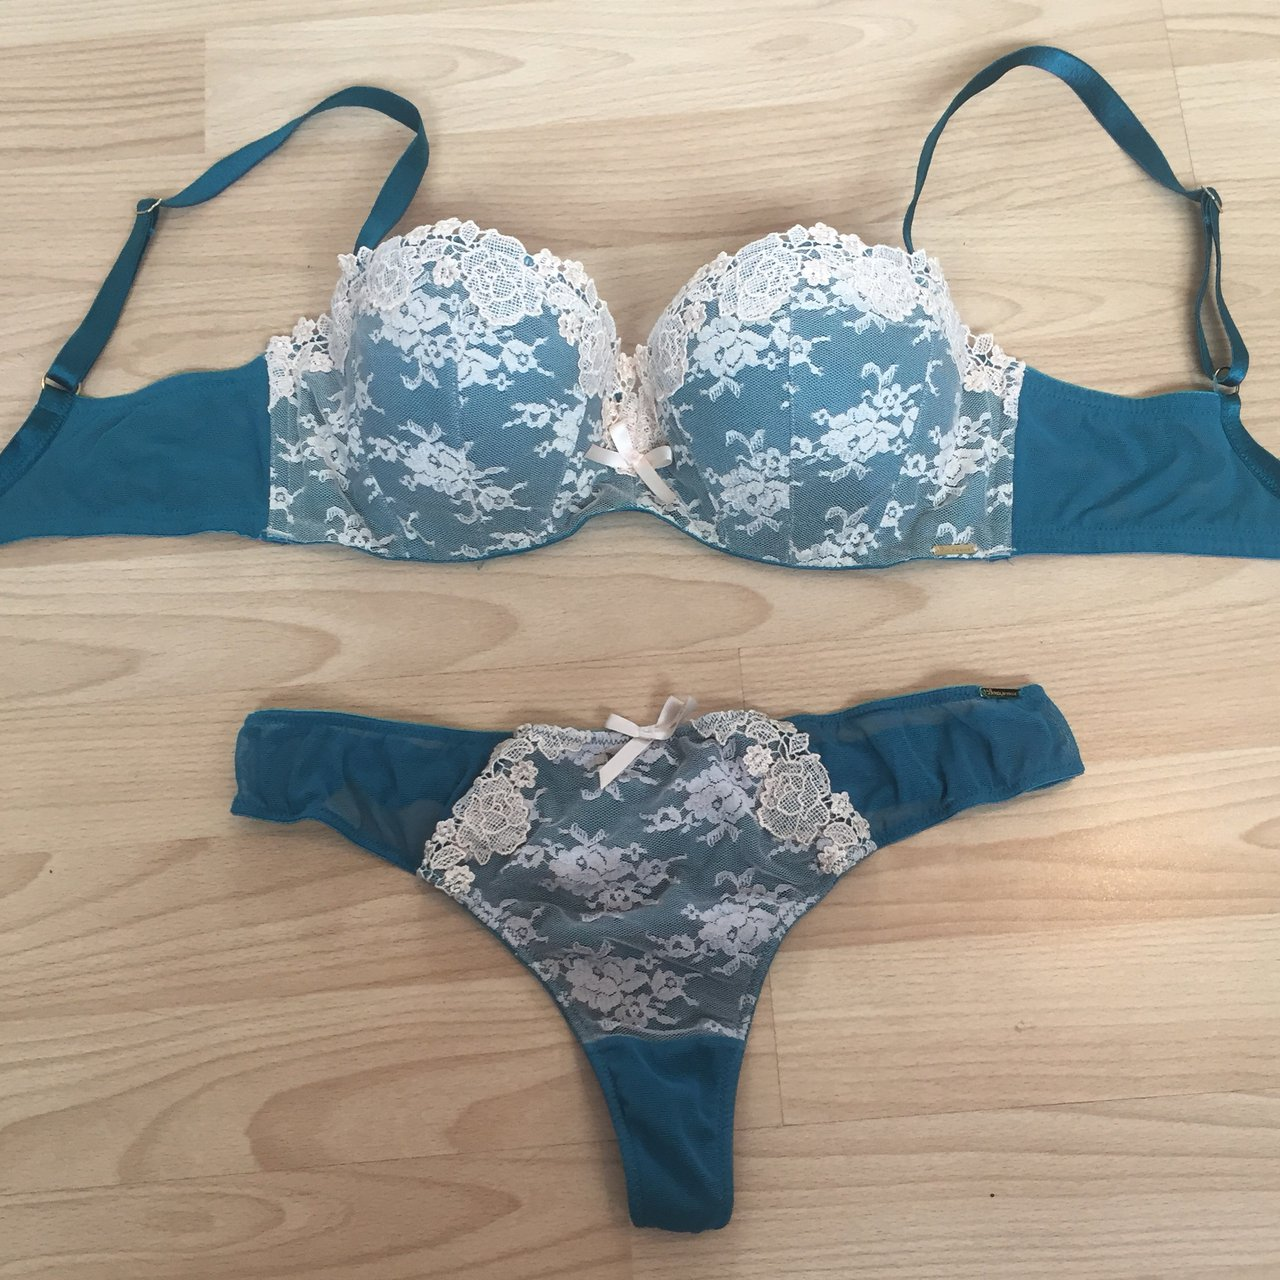 d60badd2bd5a5 Gorgeous Boux Avenue Lingerie Set Teal Dark Green with Cream - Depop